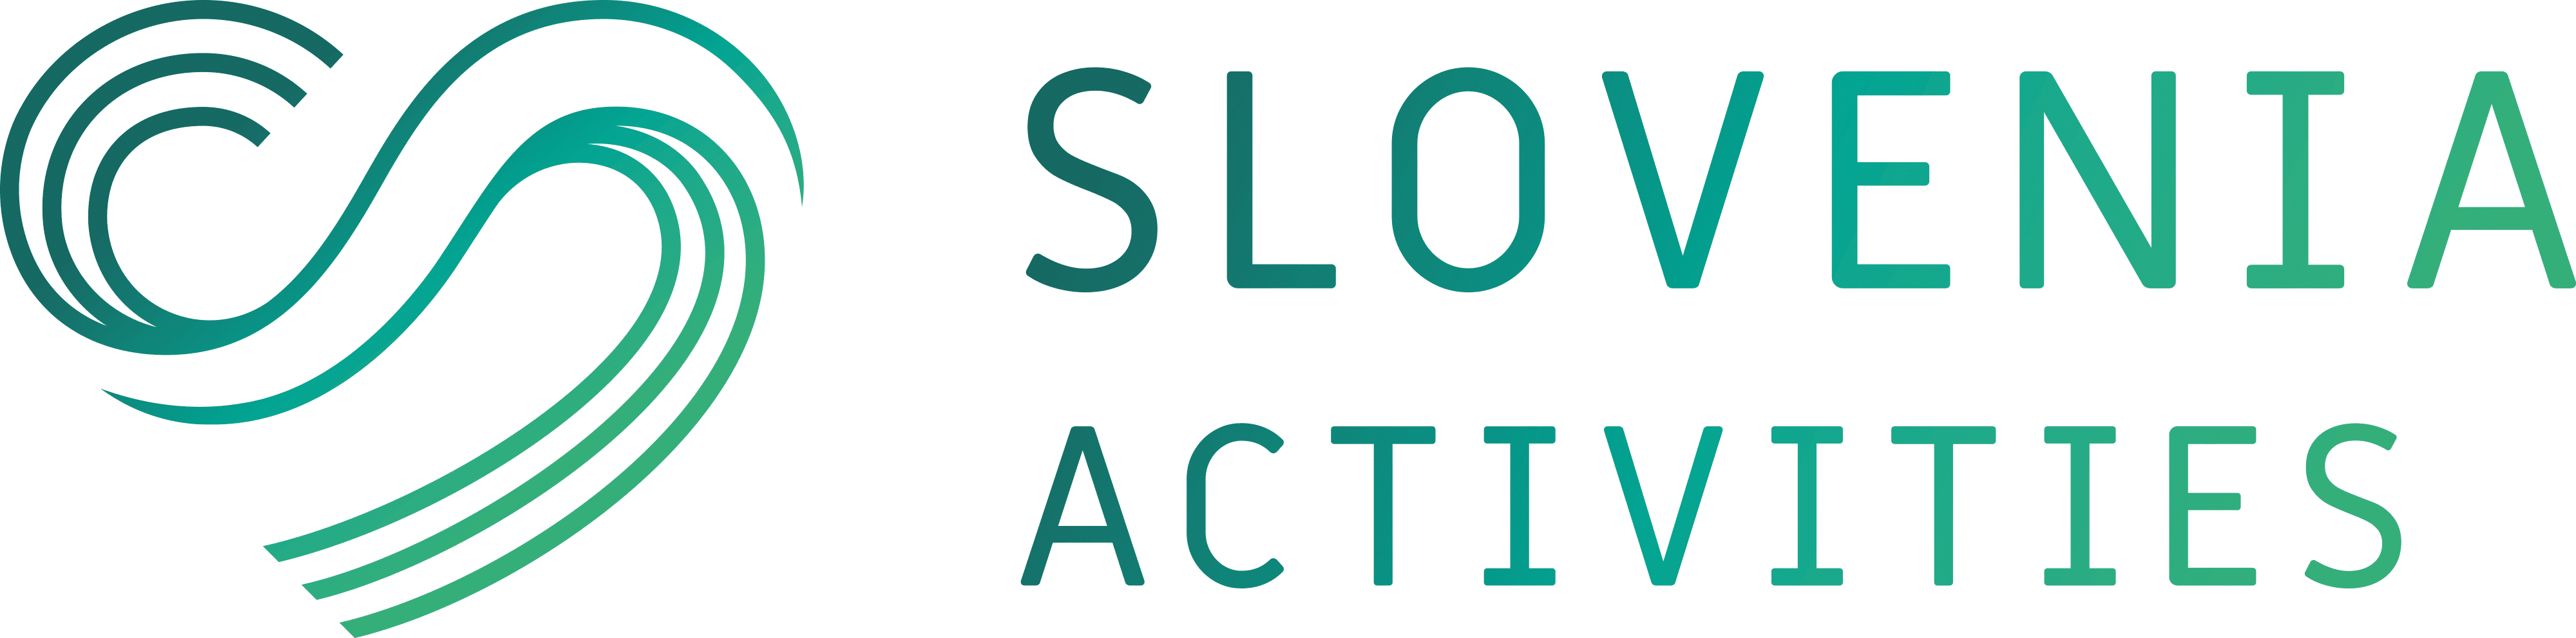 Slovenia activities logo